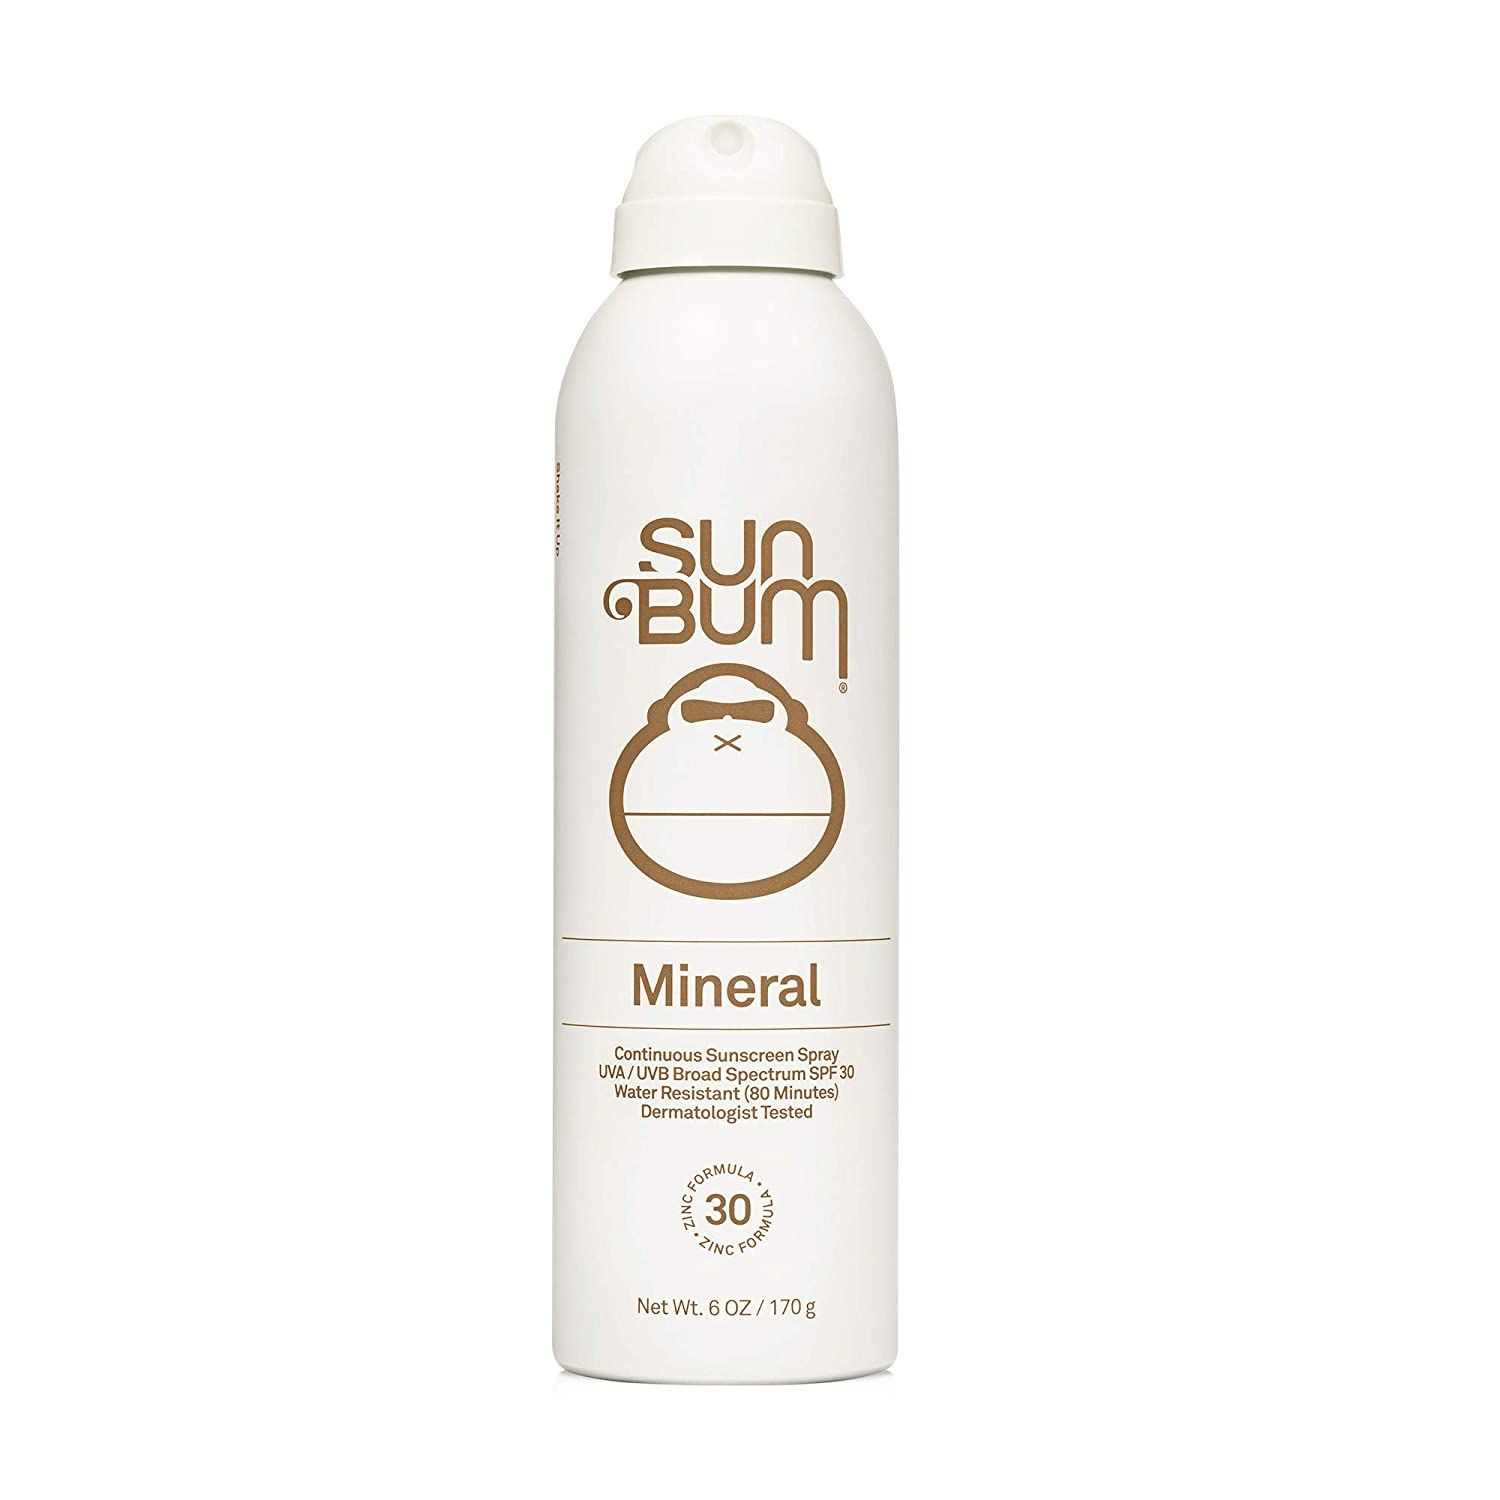 Sun Bum Mineral SPF 30 Whipped Sunscreen Spray   Vegan and Reef Friendly (Octinoxate & Oxybenzone Free) Broad Spectrum Natural Sunscreen with UVA/UVB Protection with Zinc   6 oz (20-62430): Beauty